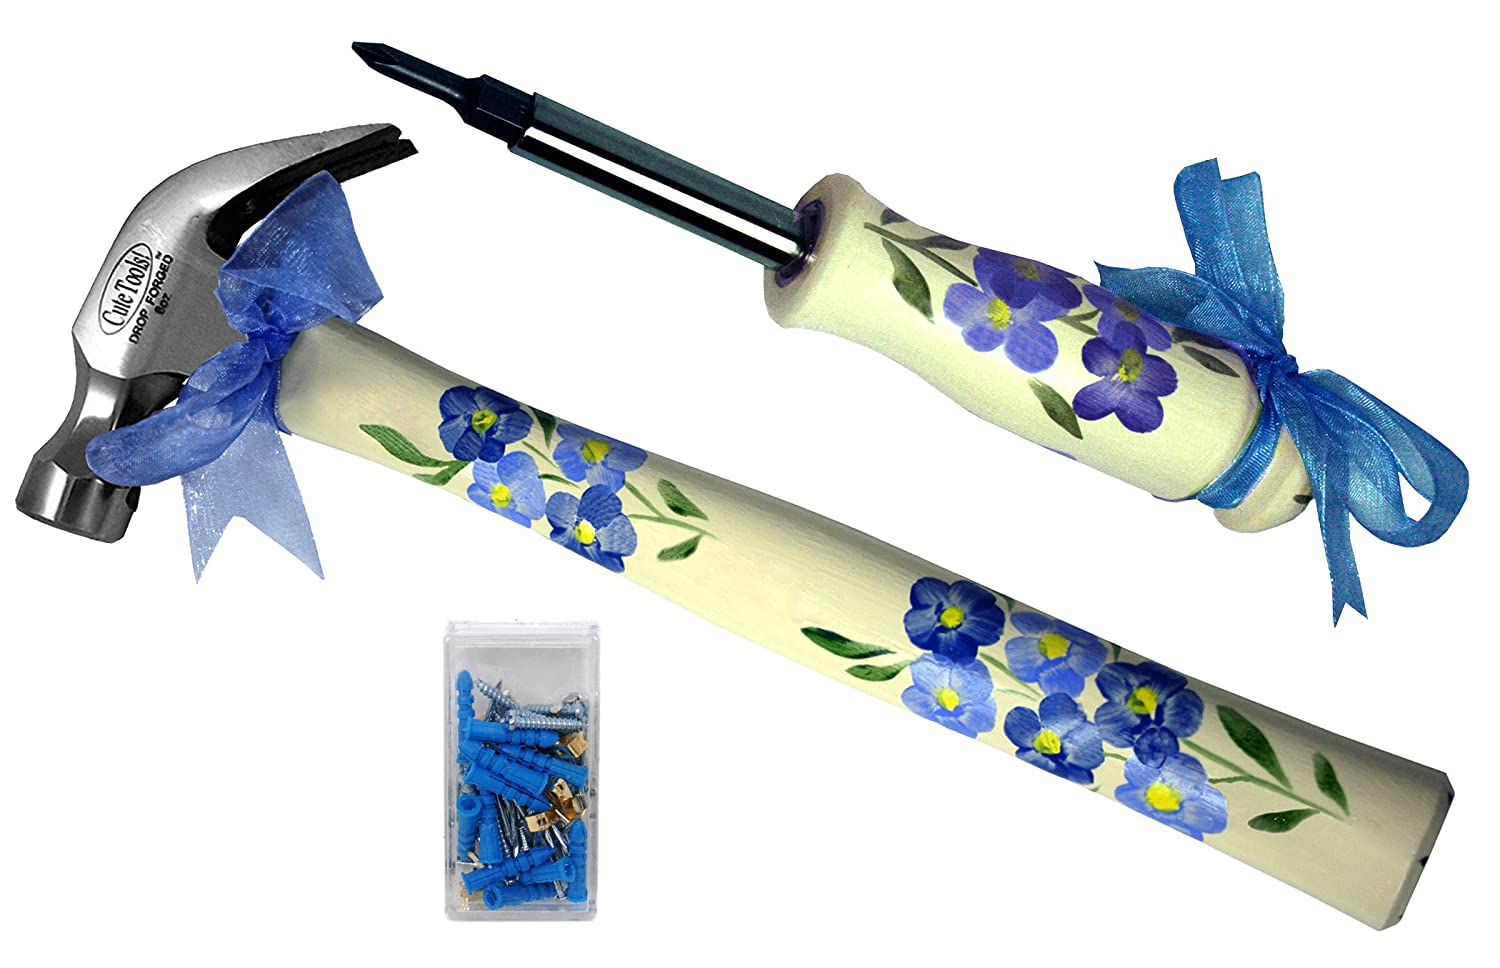 CuteTools! 13330 Home Essential Kit, Includes a Hammer, 4-in-1 Screwdriver and Assorted Fasteners, Wildflowers - Hand Tool Sets - Amazon.com